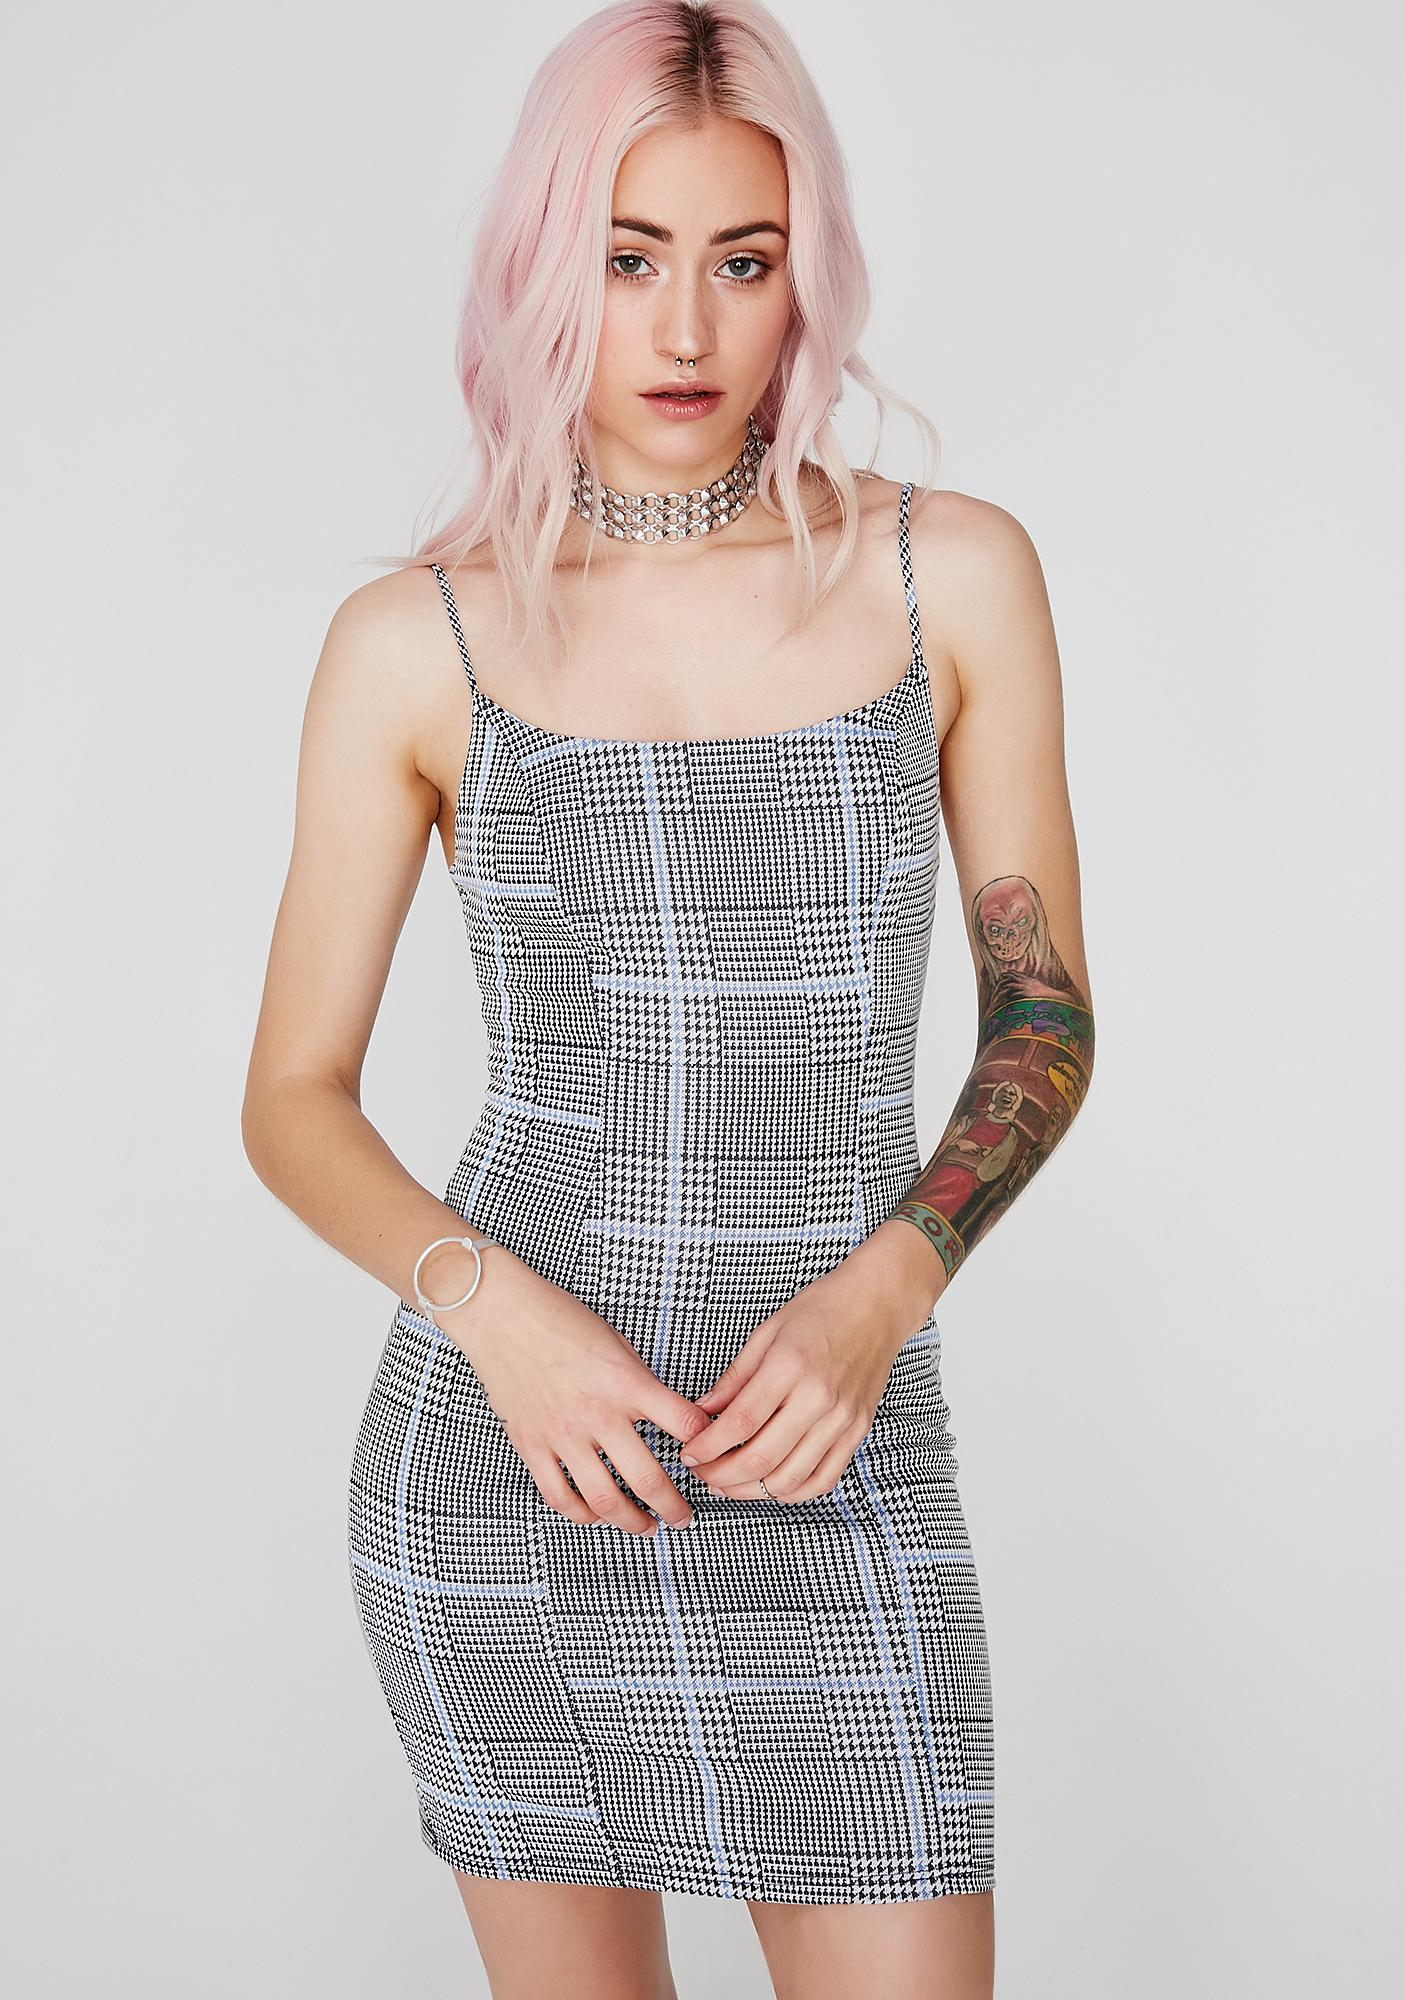 Too True Plaid Dress